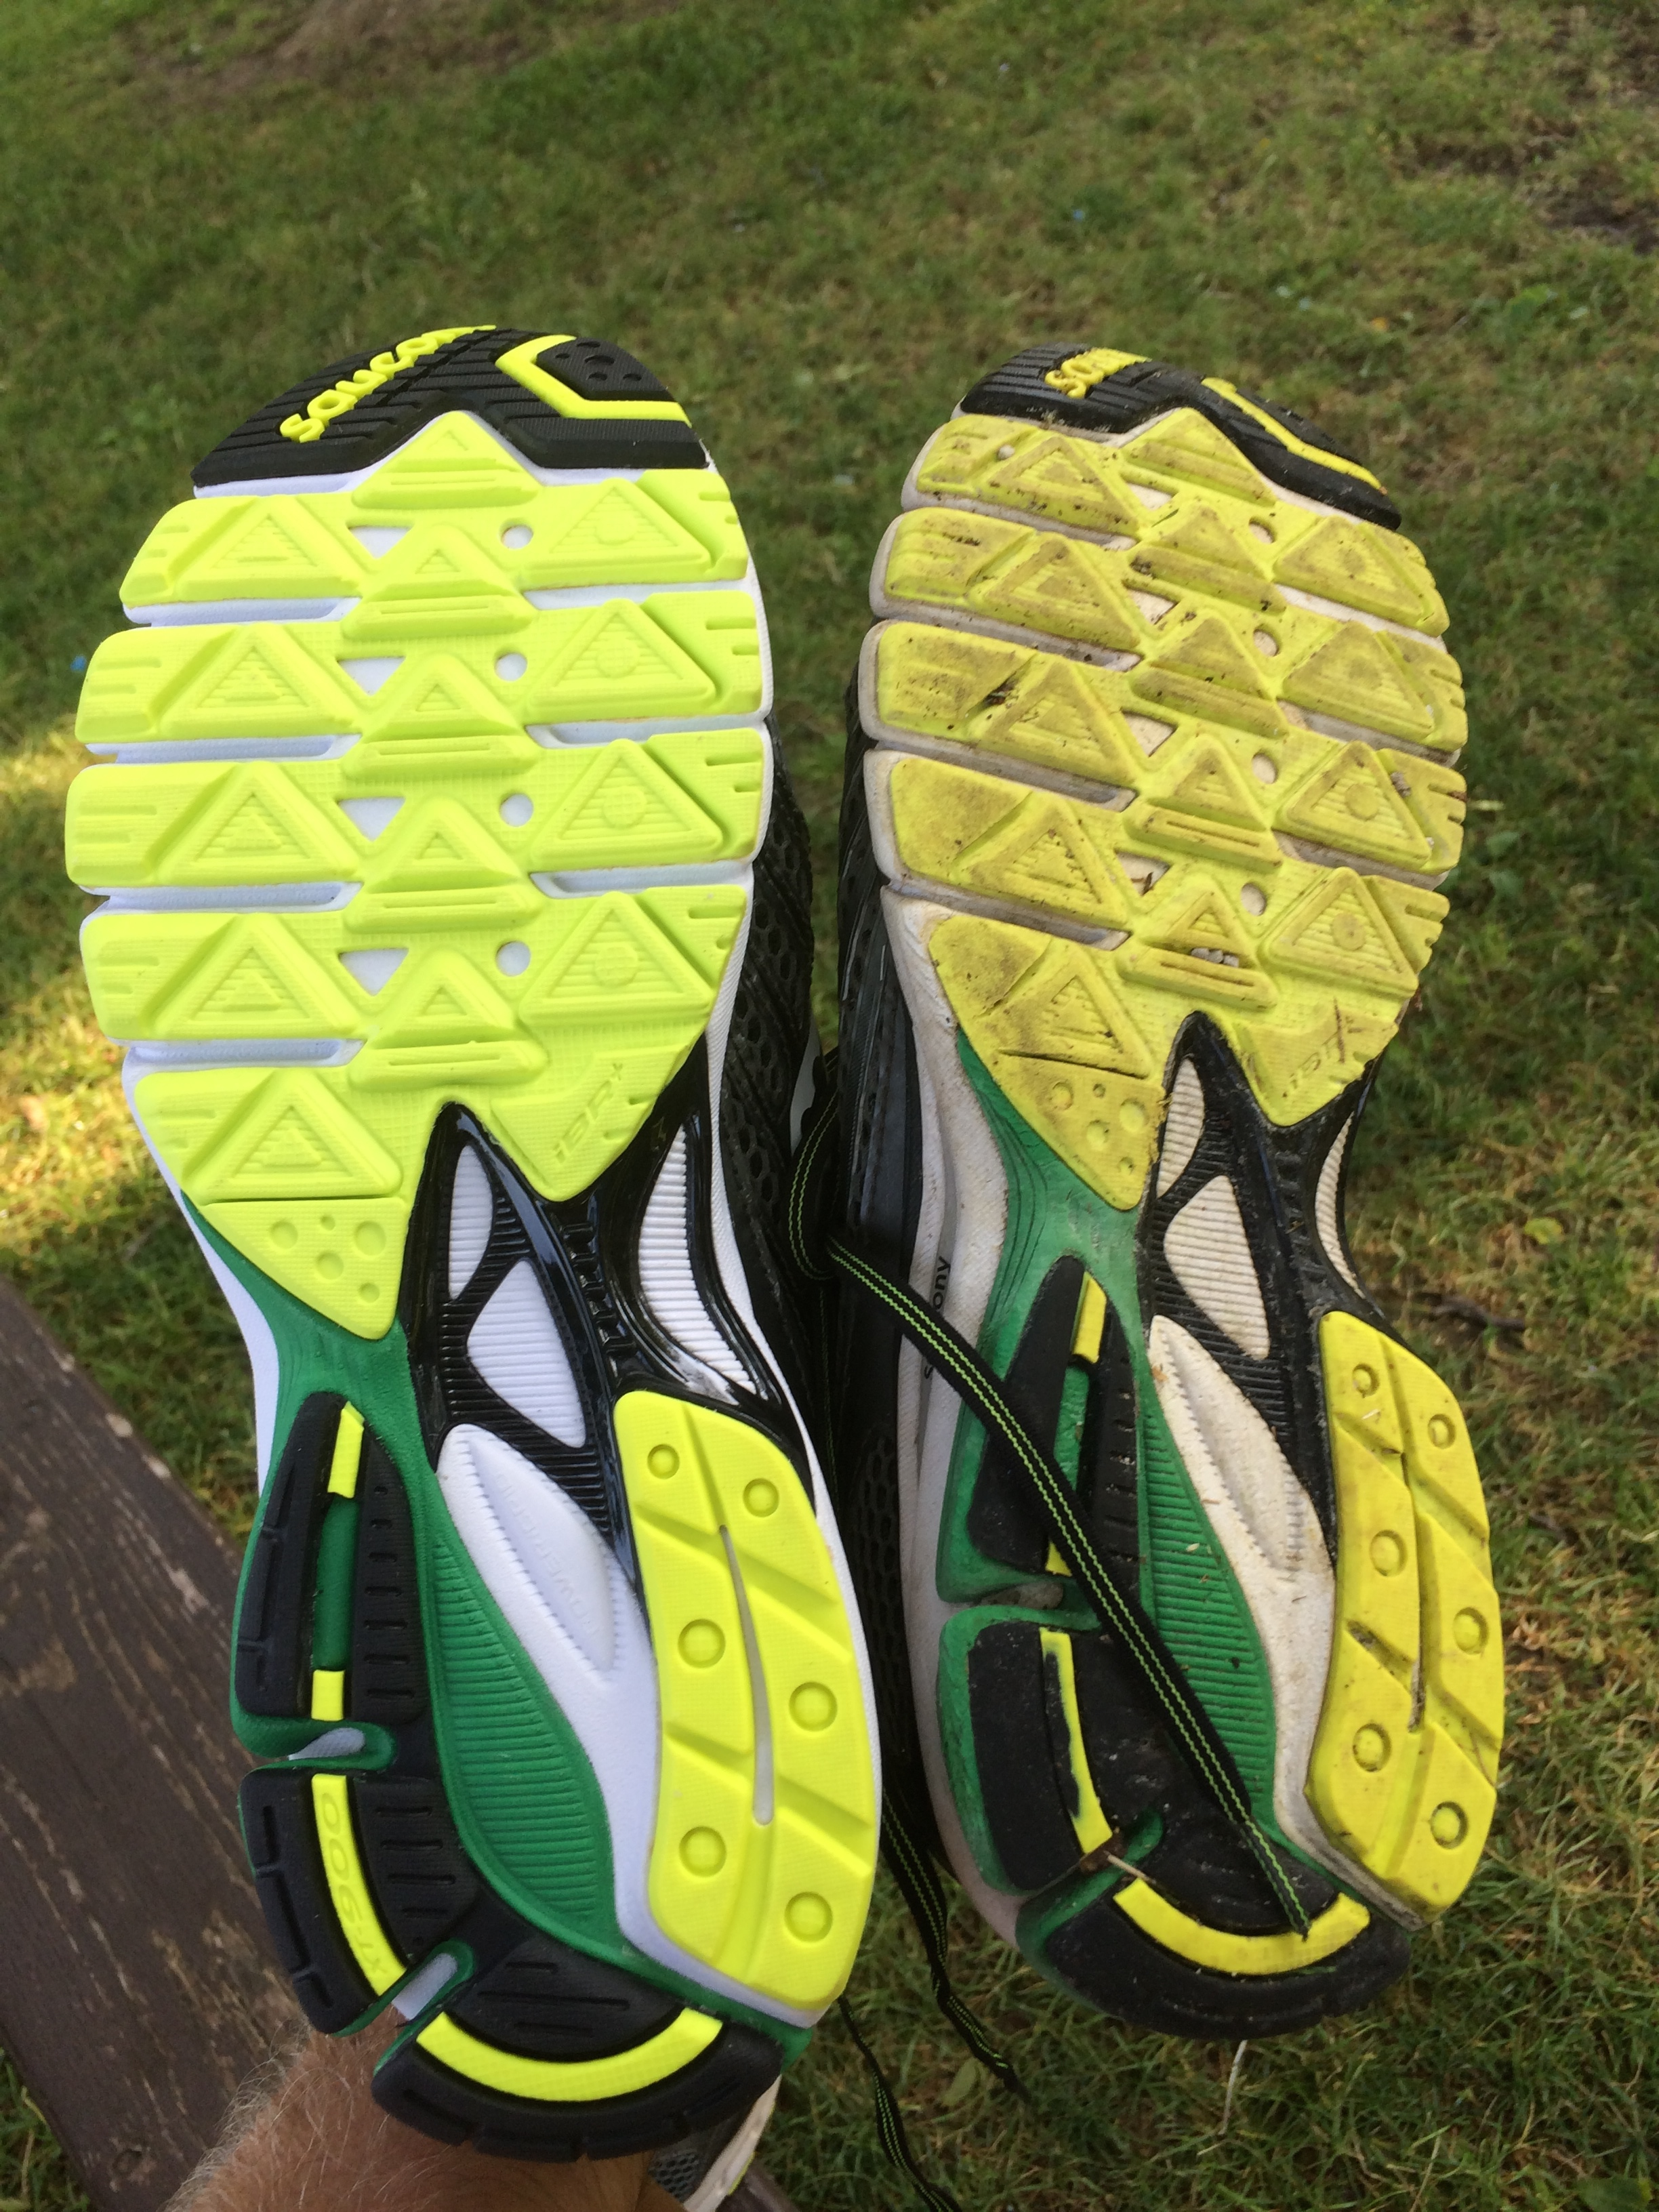 How To Know If Your Running Shoes Are Worn Out